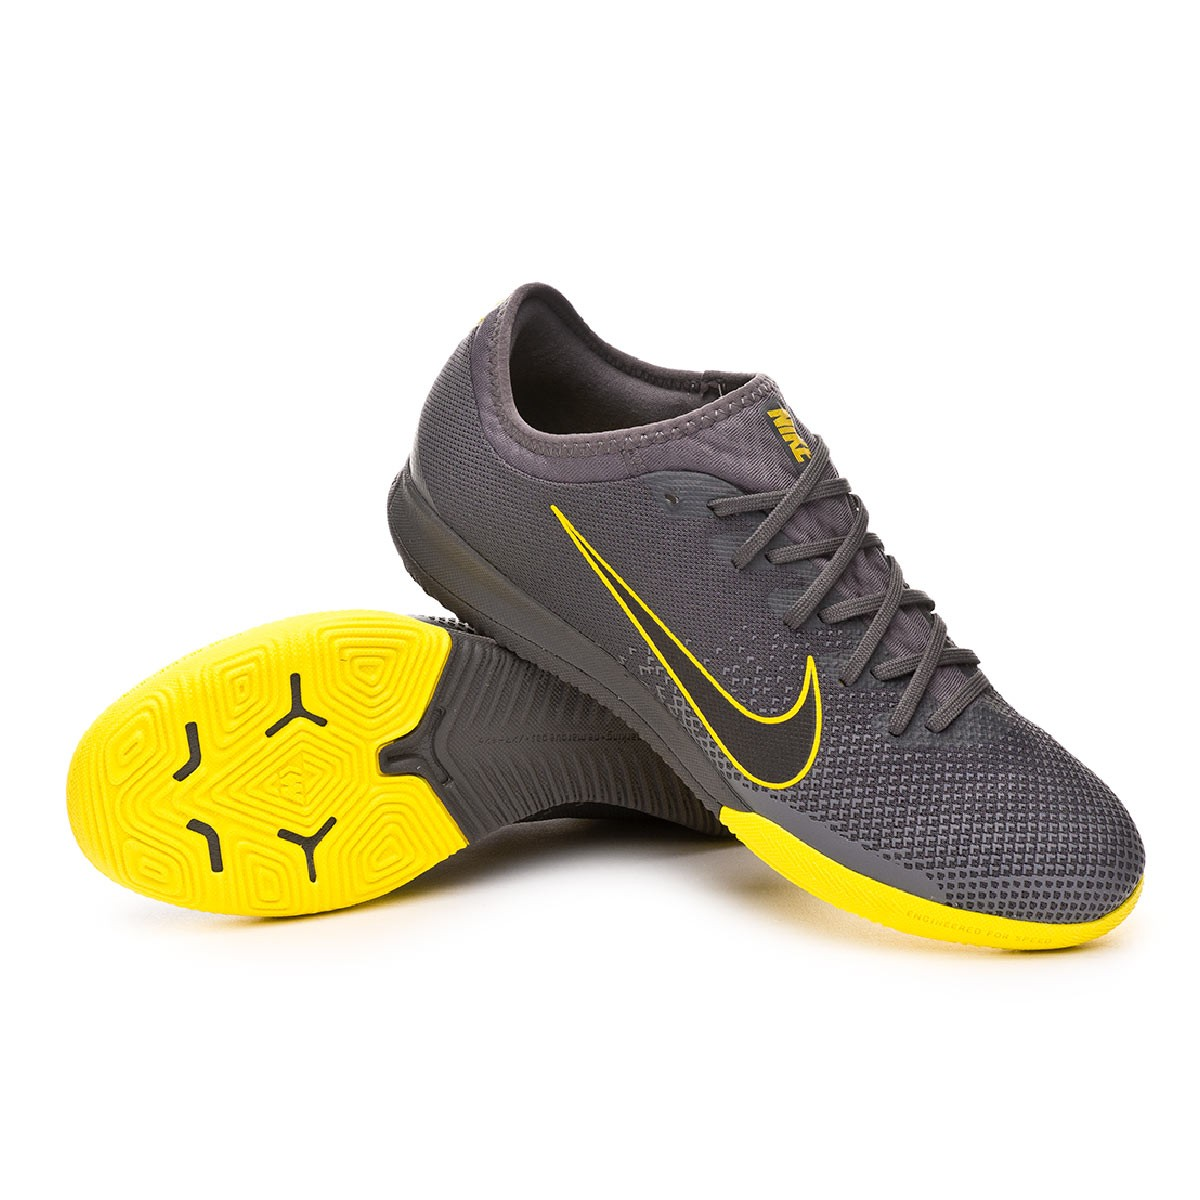 the latest 0aeb5 49ad5 Zapatilla Mercurial VaporX XII Pro IC Anthracite-Optical yellow-Dark  grey-Black